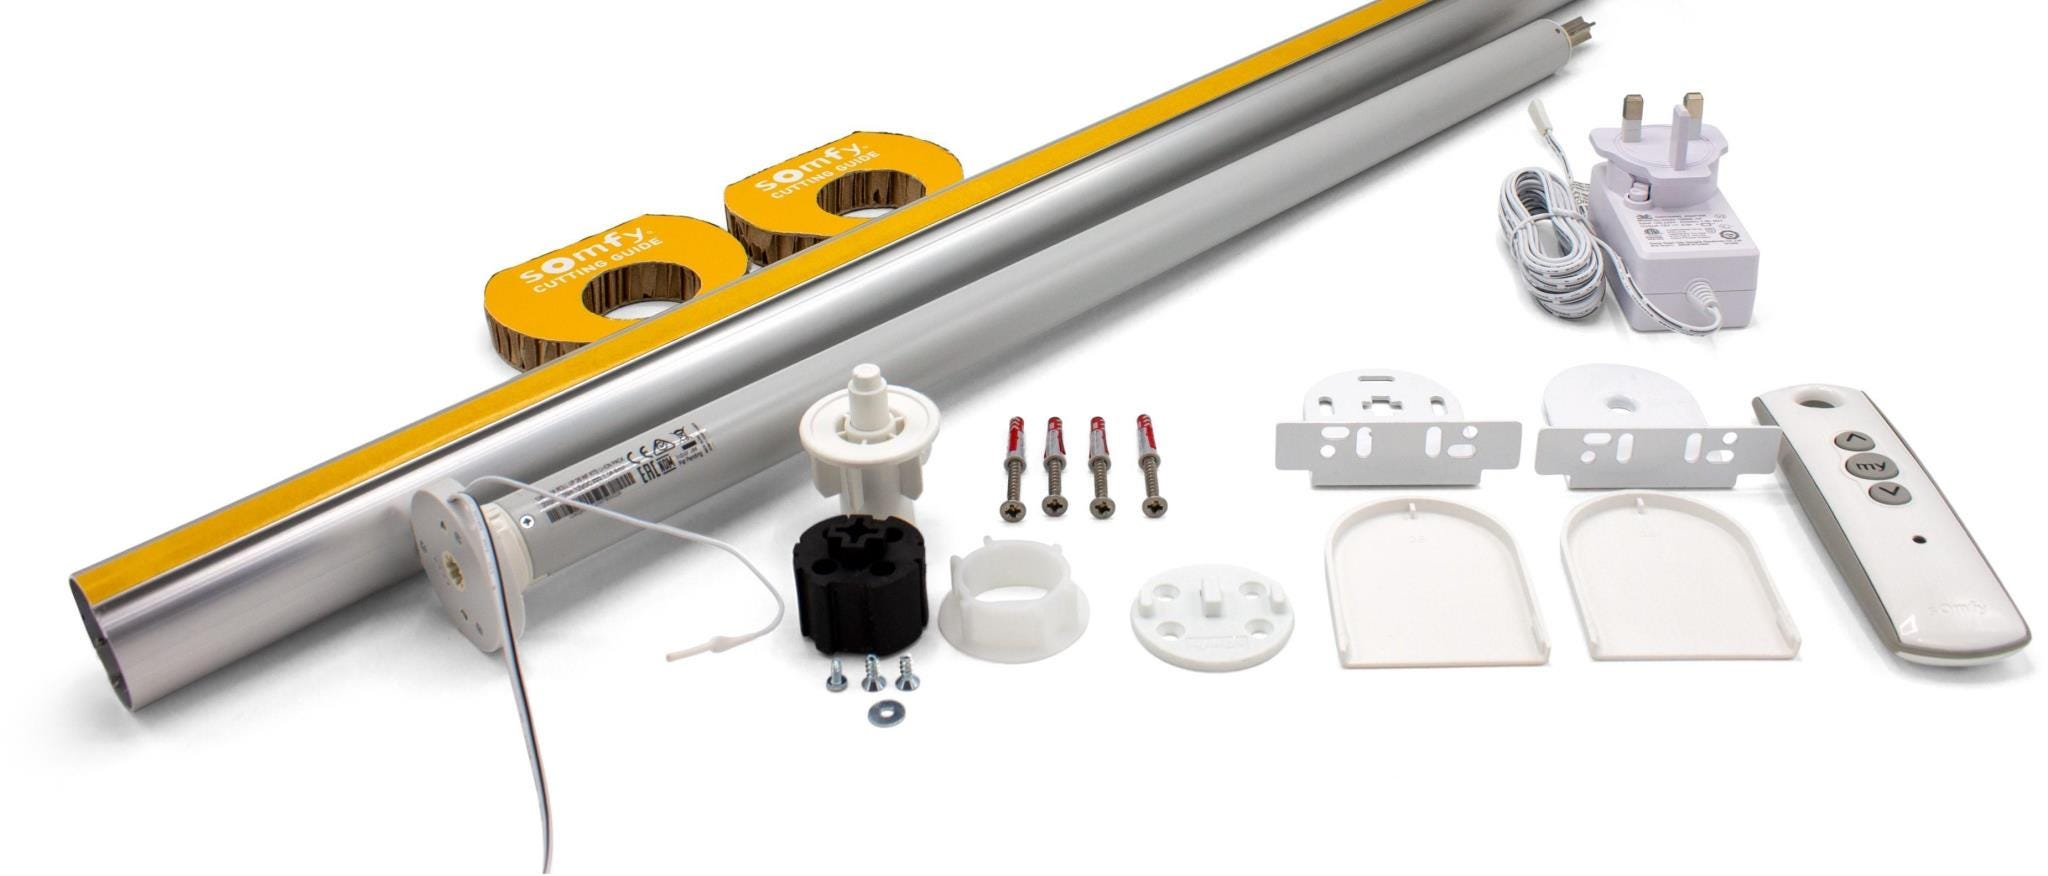 Somfy Roller Blind DIY Automation Kit (1.6m)